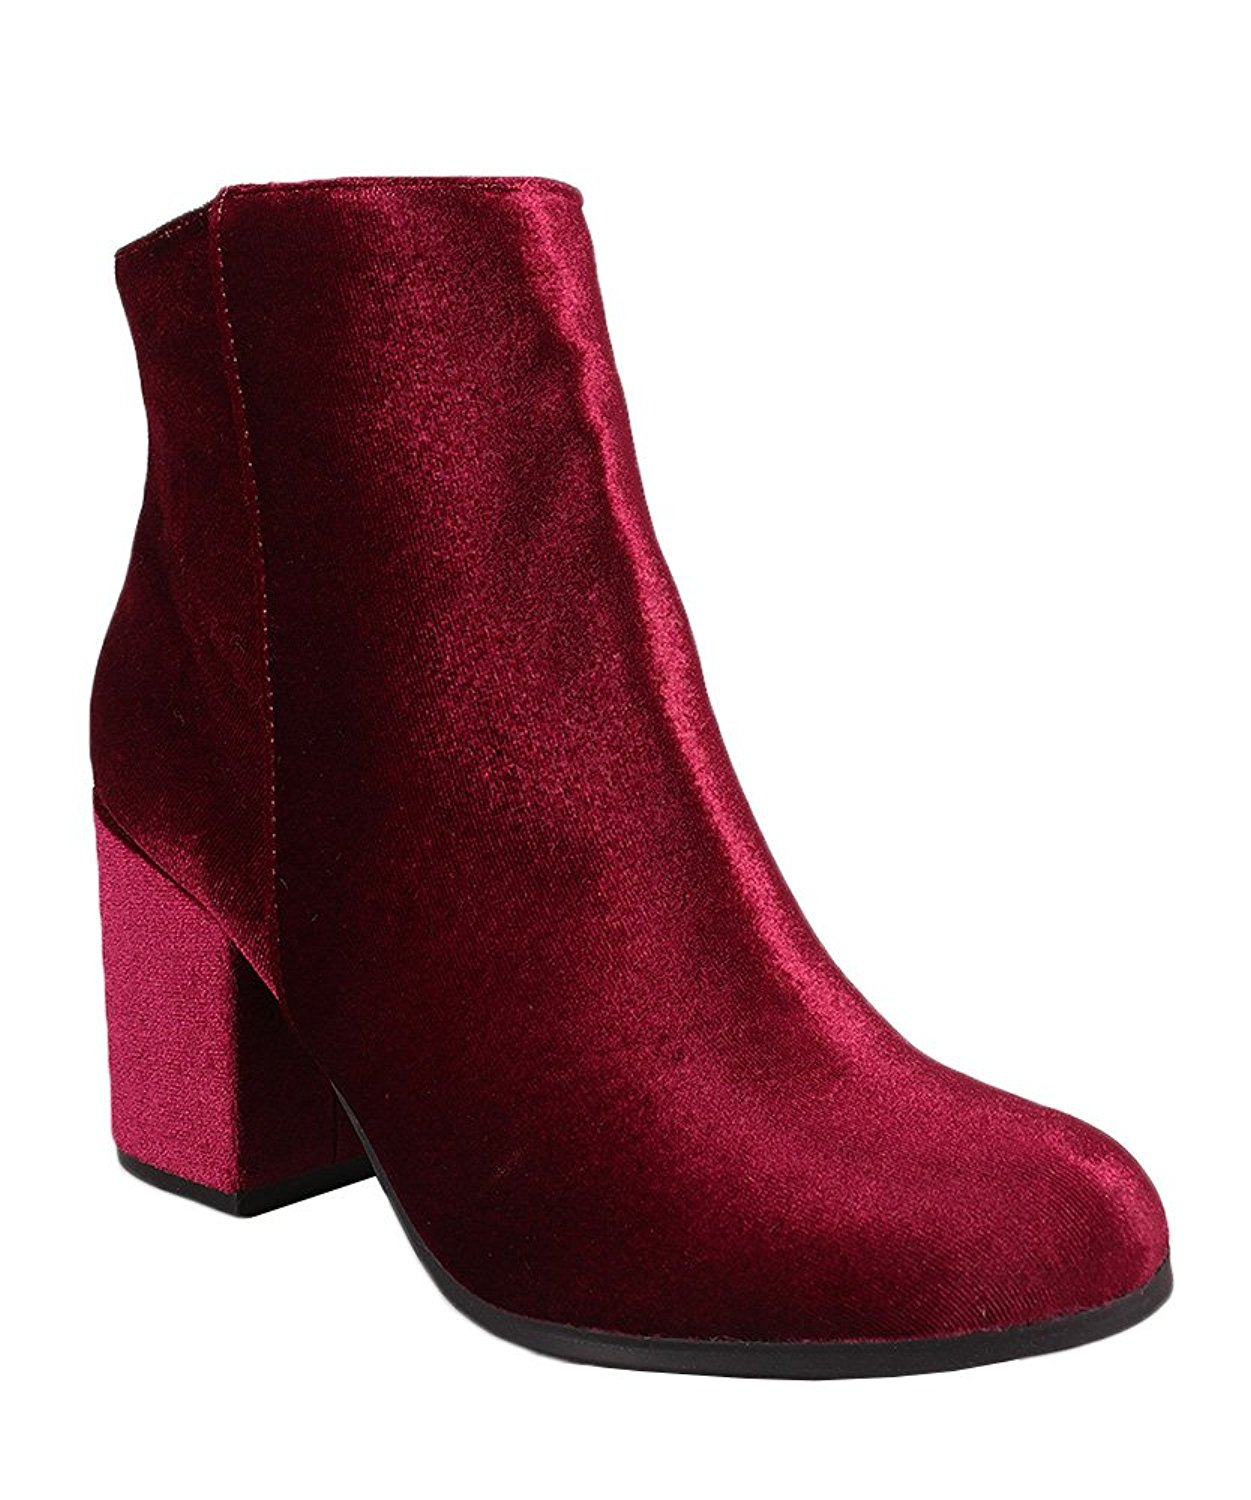 Qupid Rannel-07 Women Fashion Faux Velvet Fitted Almond Toe Pointy Toe Block Chunky Heel Ankle Booties